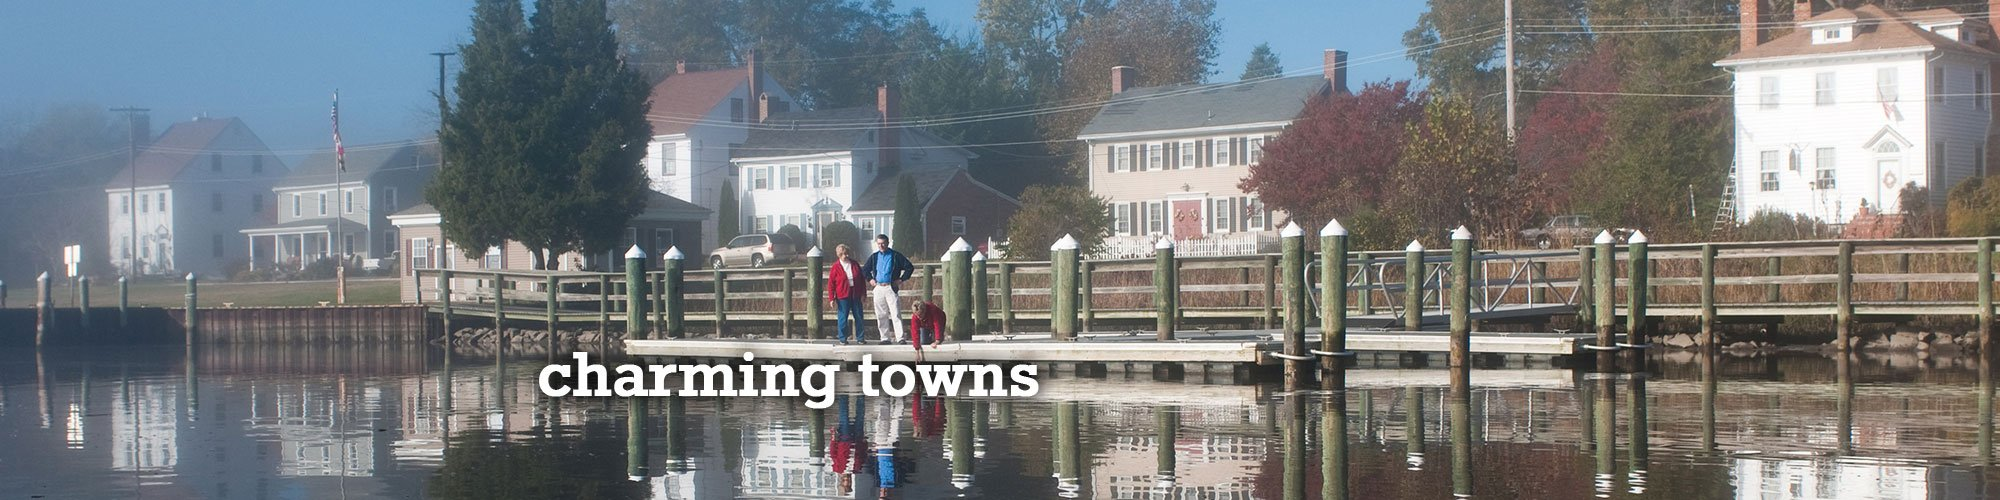 charming-towns